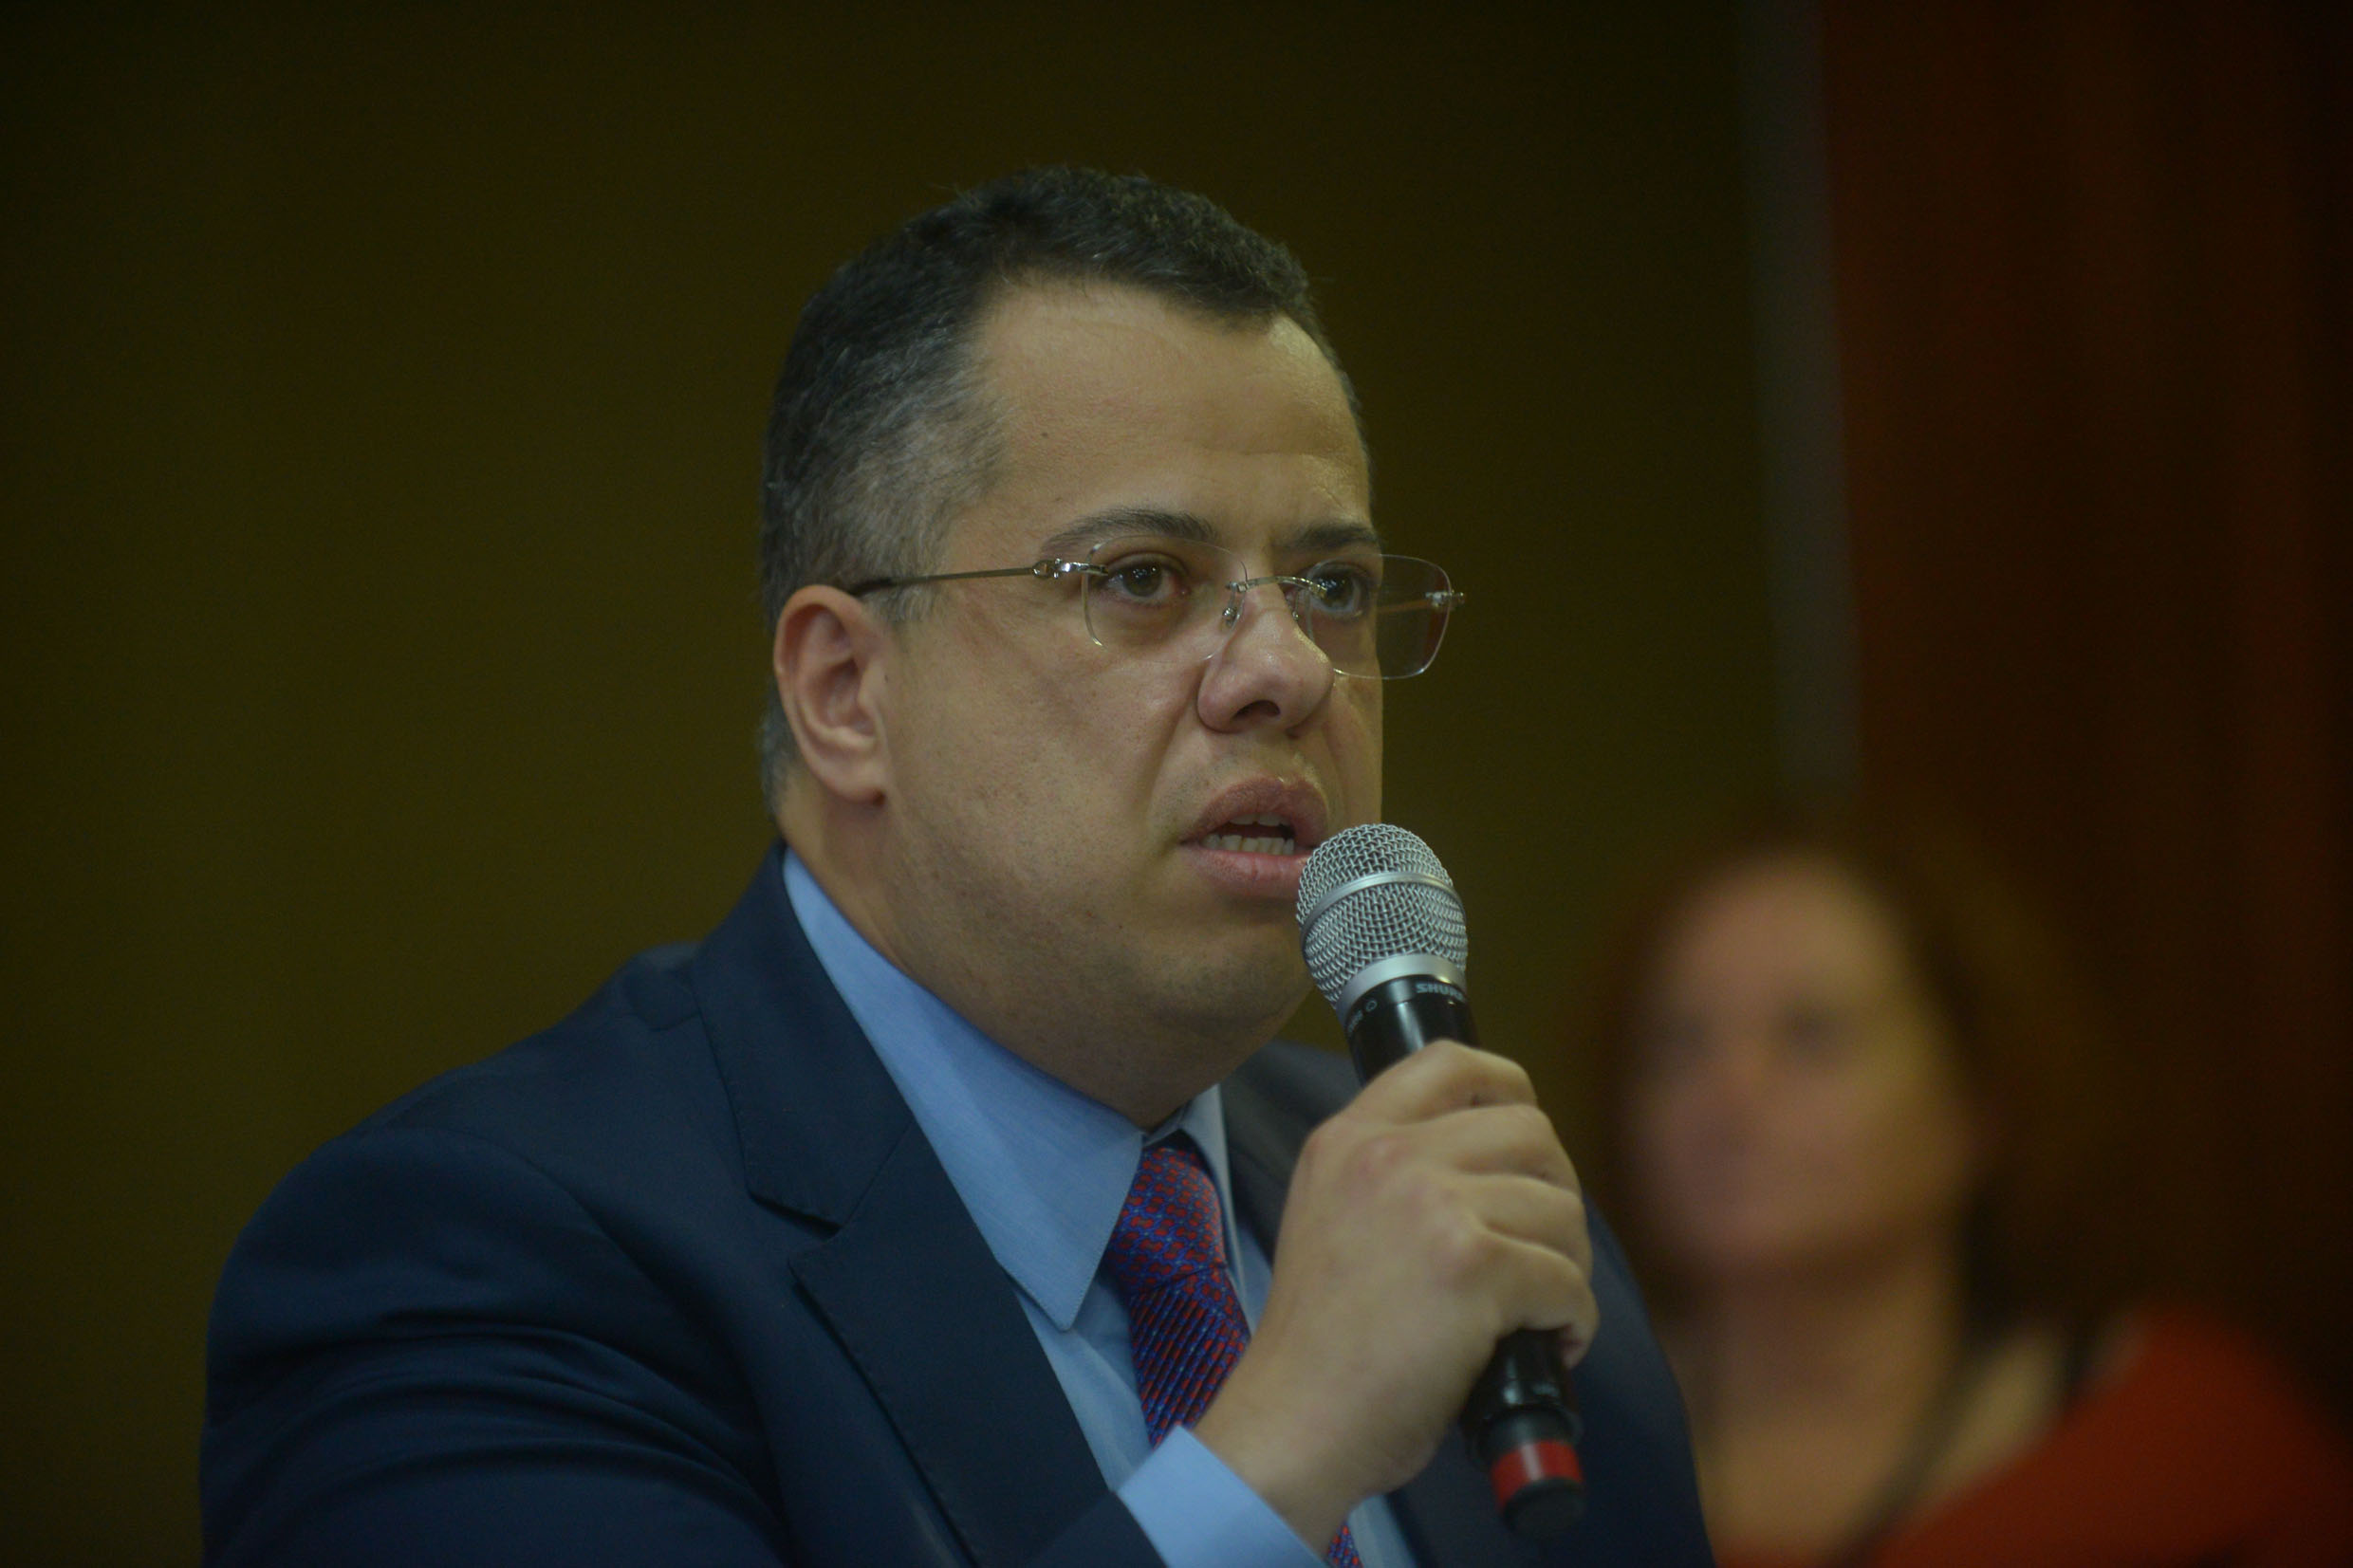 Wellington Moura<a style='float:right' href='https://www3.al.sp.gov.br/repositorio/noticia/N-11-2017/fg213643.jpg' target=_blank><img src='/_img/material-file-download-white.png' width='14px' alt='Clique para baixar a imagem'></a>